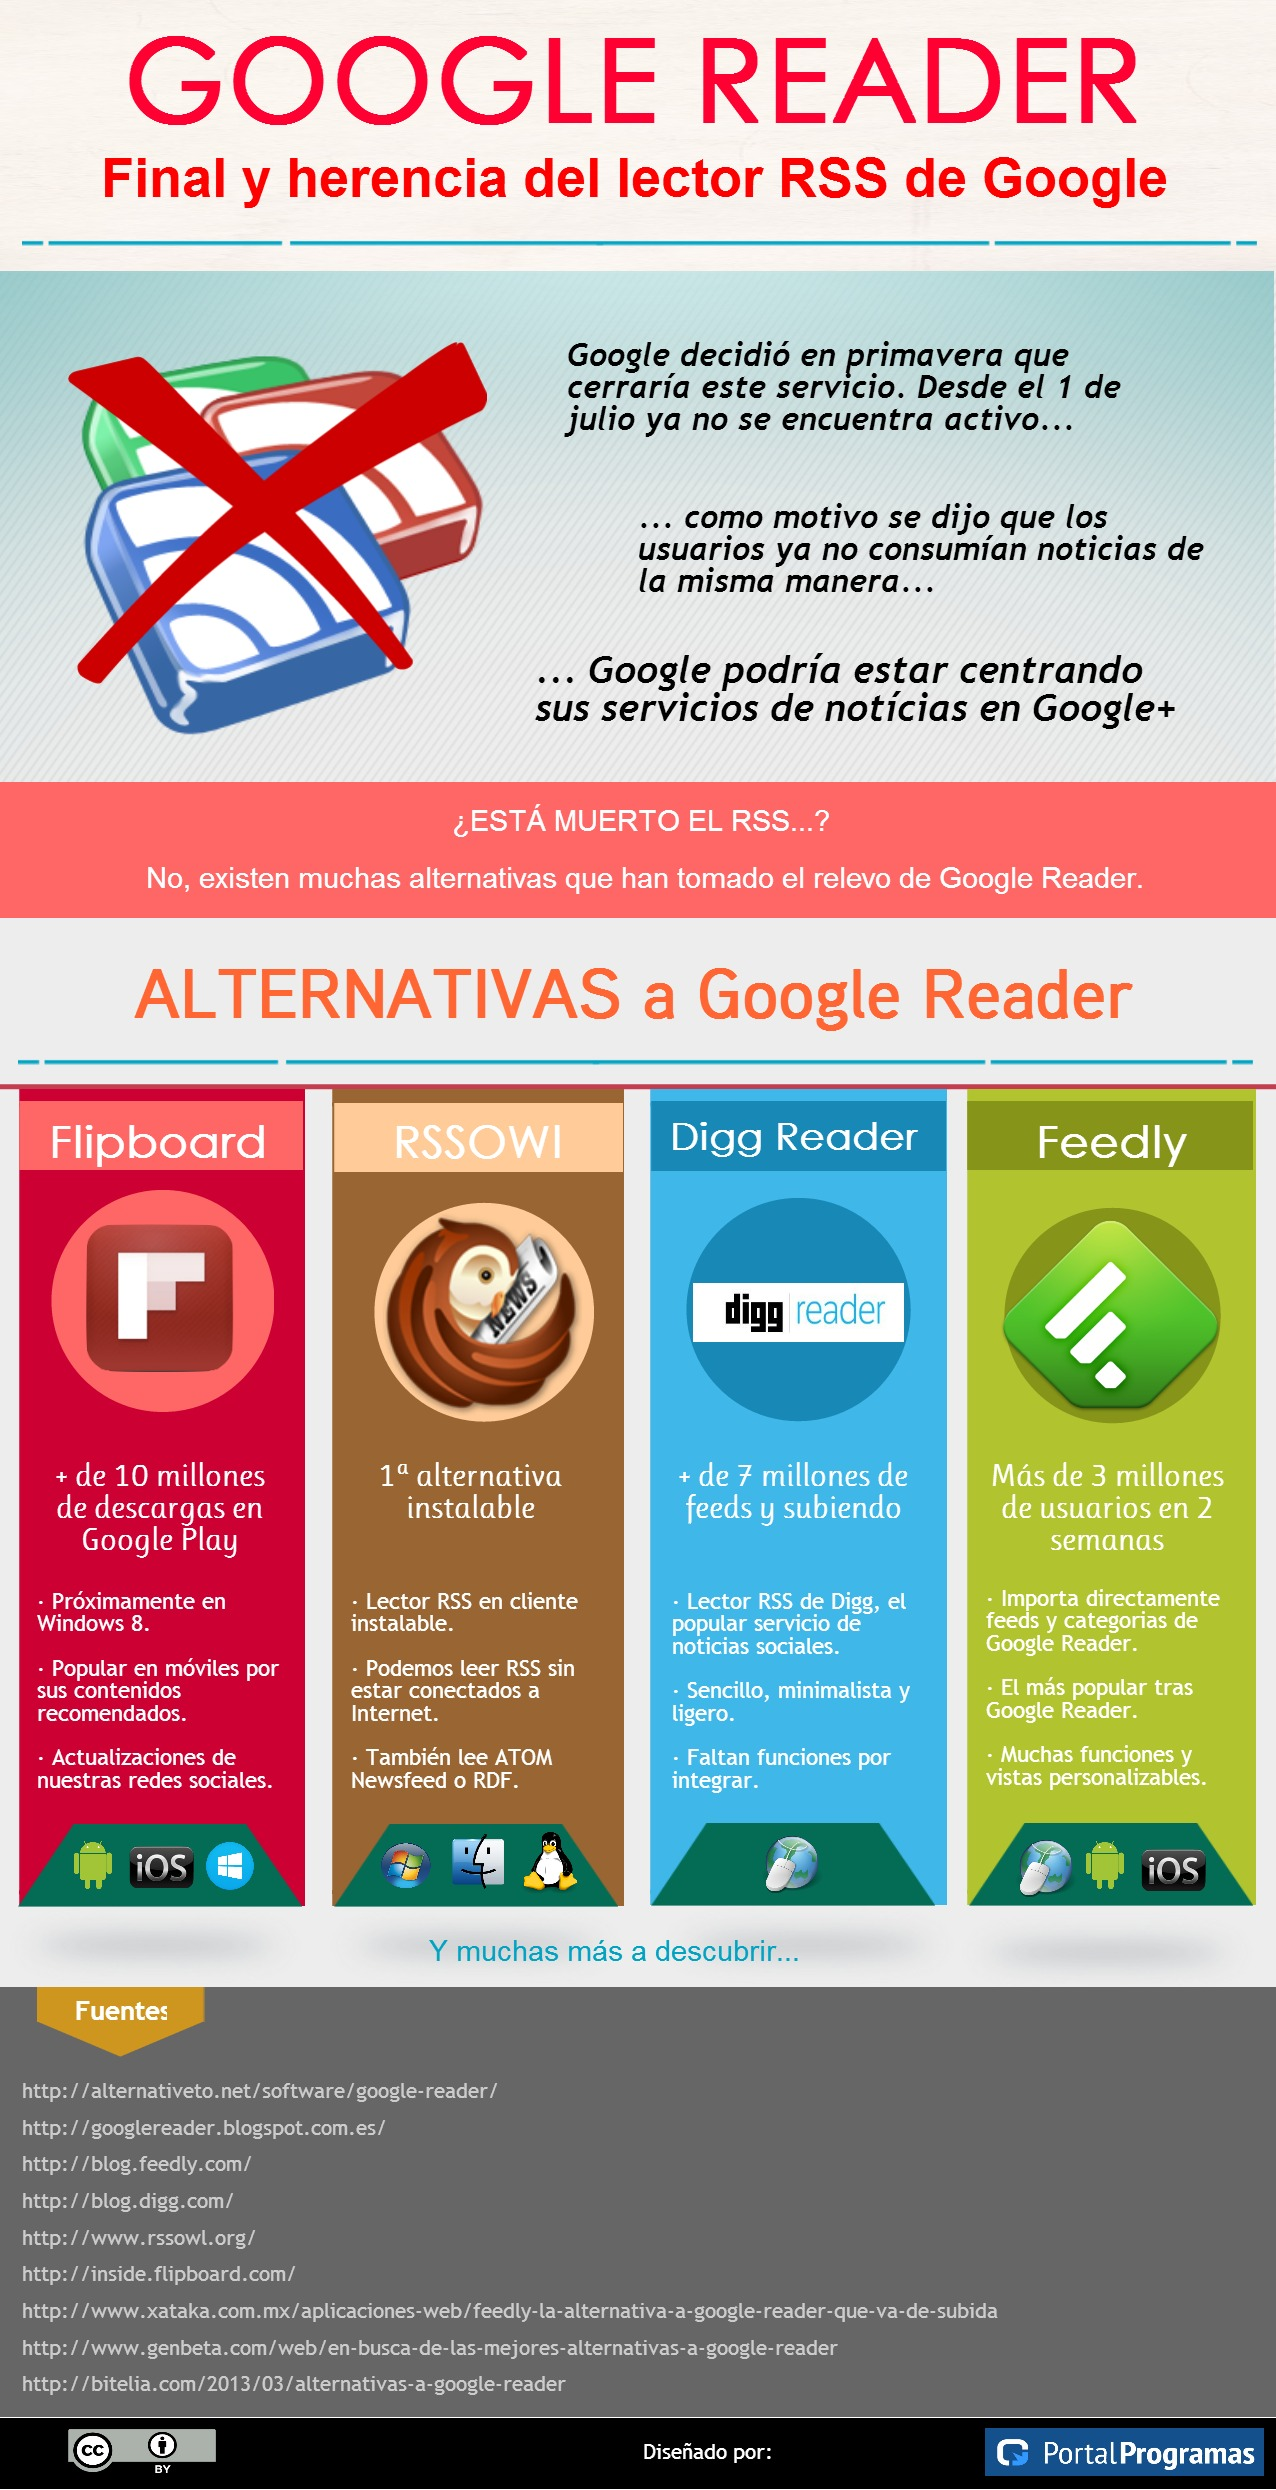 Final y alternativas a Google Reader